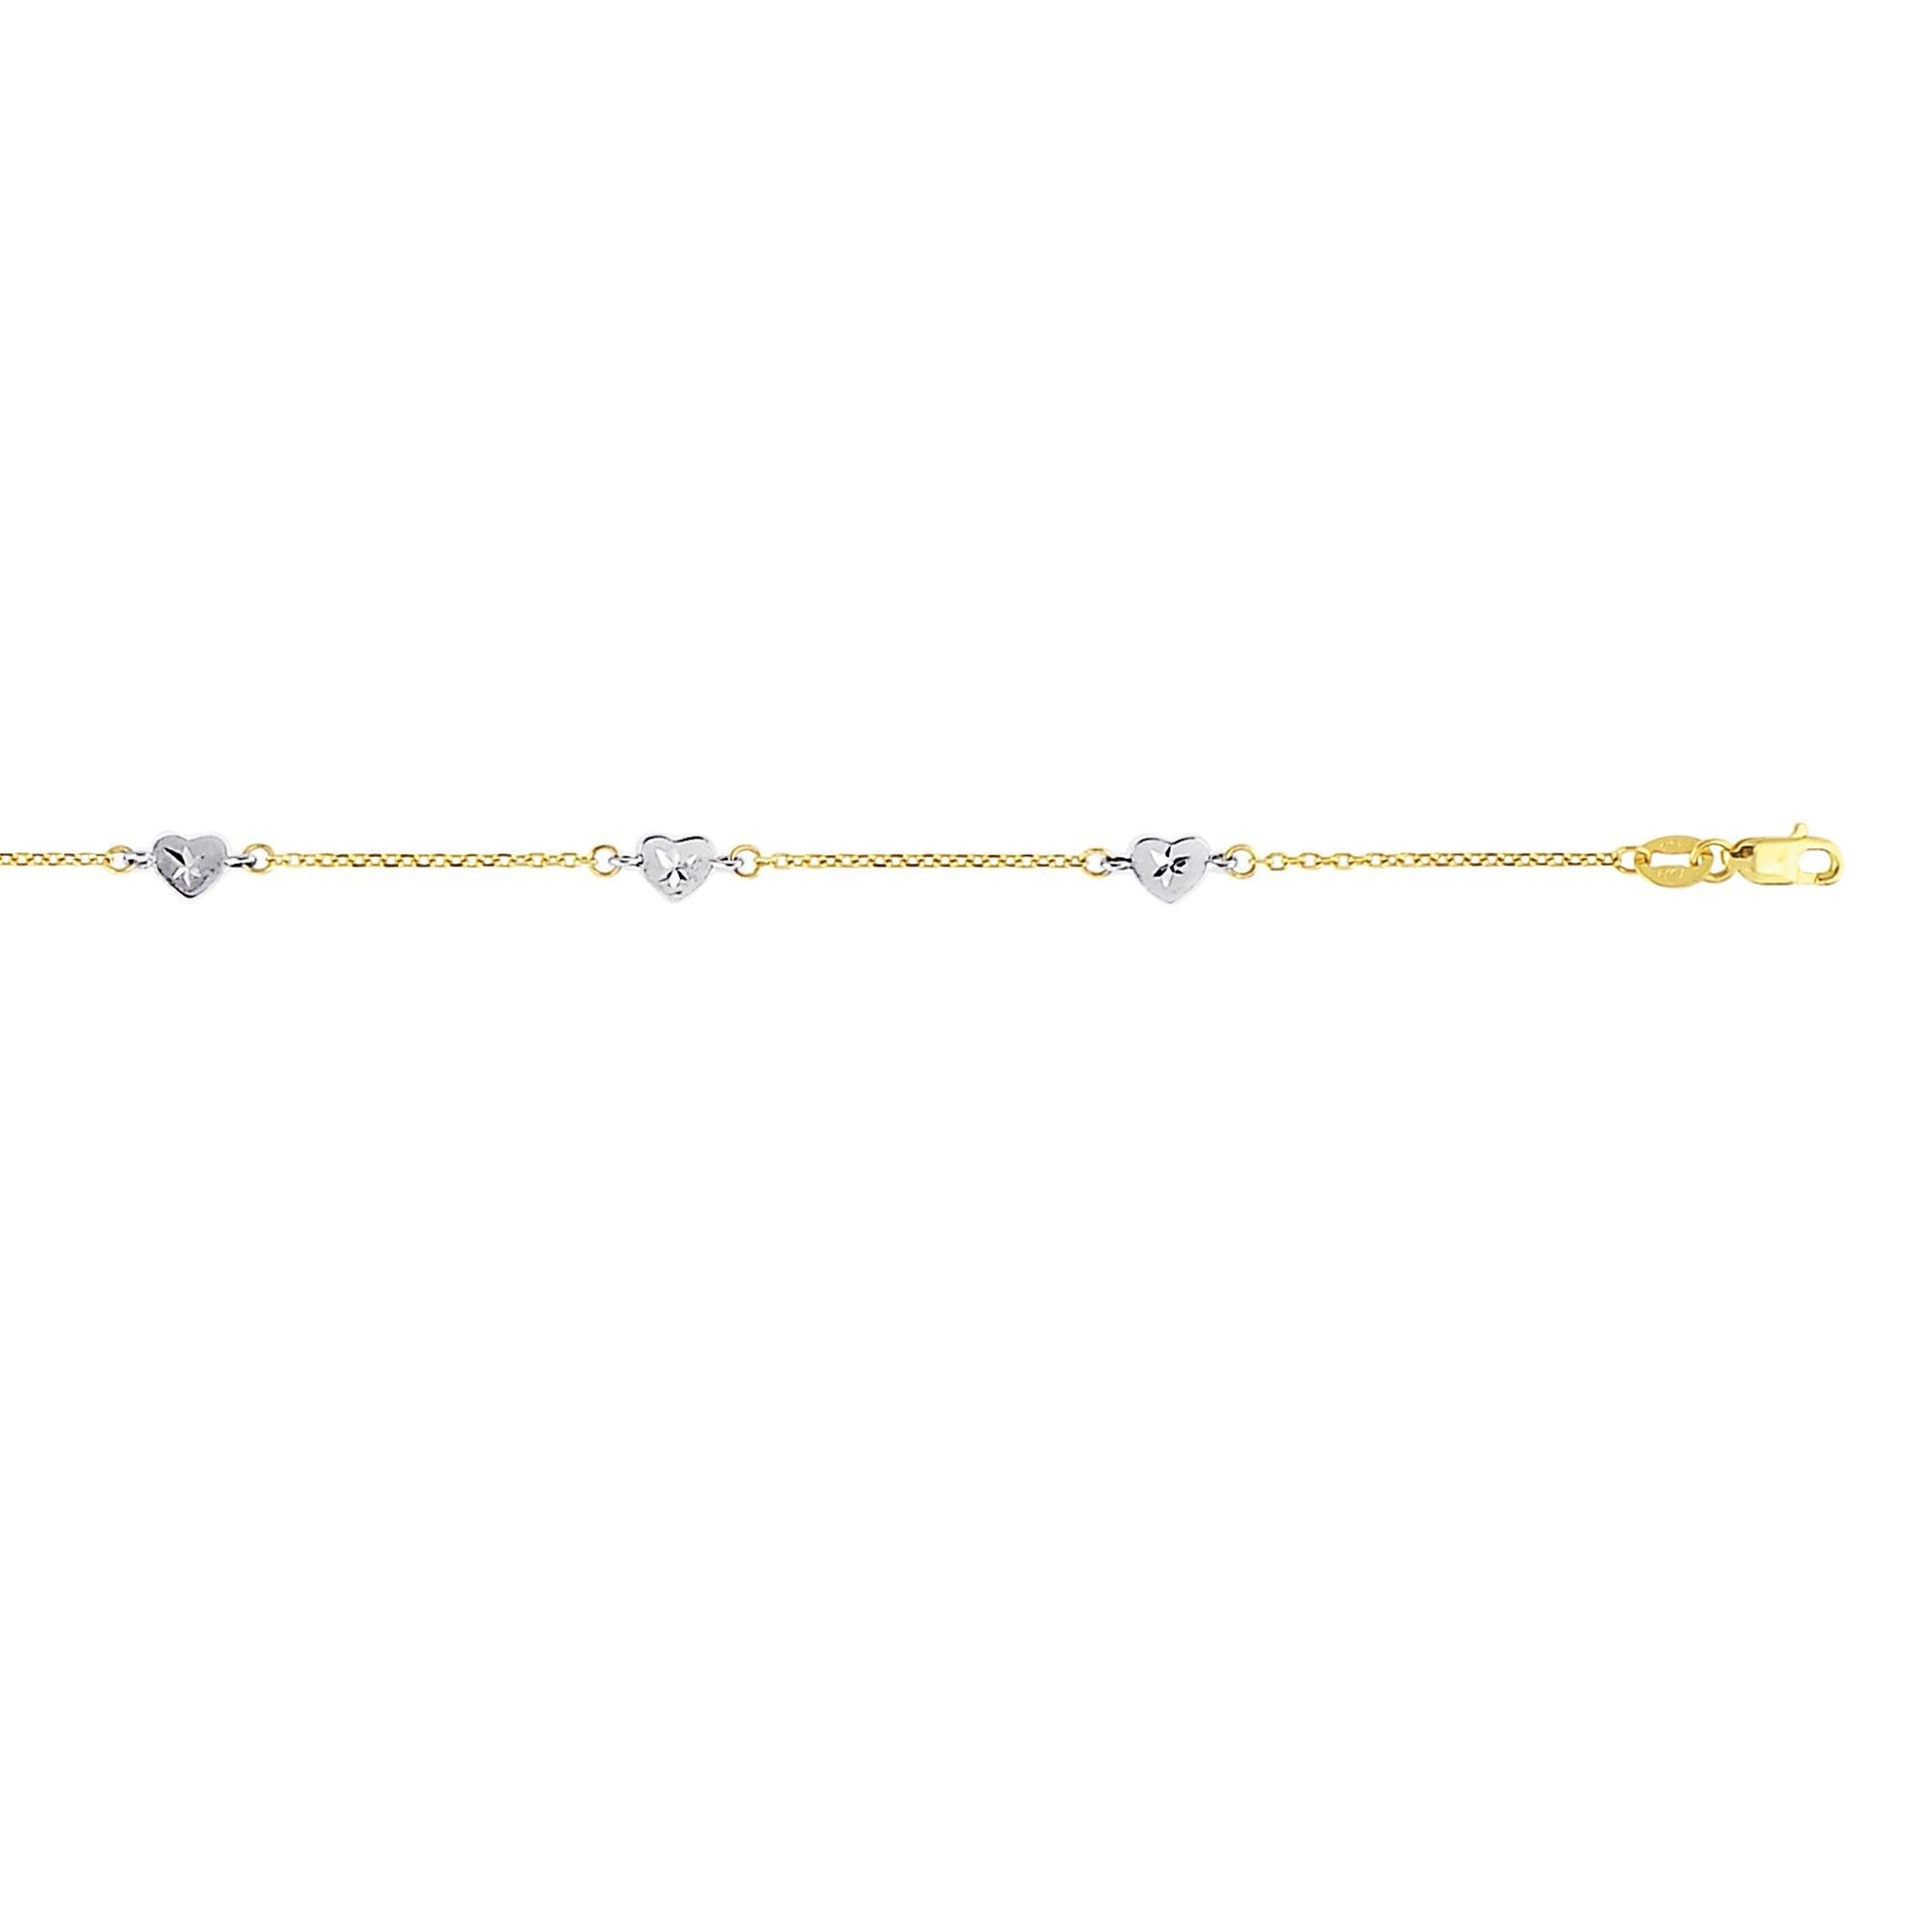 14k Two Tone Yellow And White Gold 10 Inch Polish Diamond Cut Finish Heart Anklet Bracelet